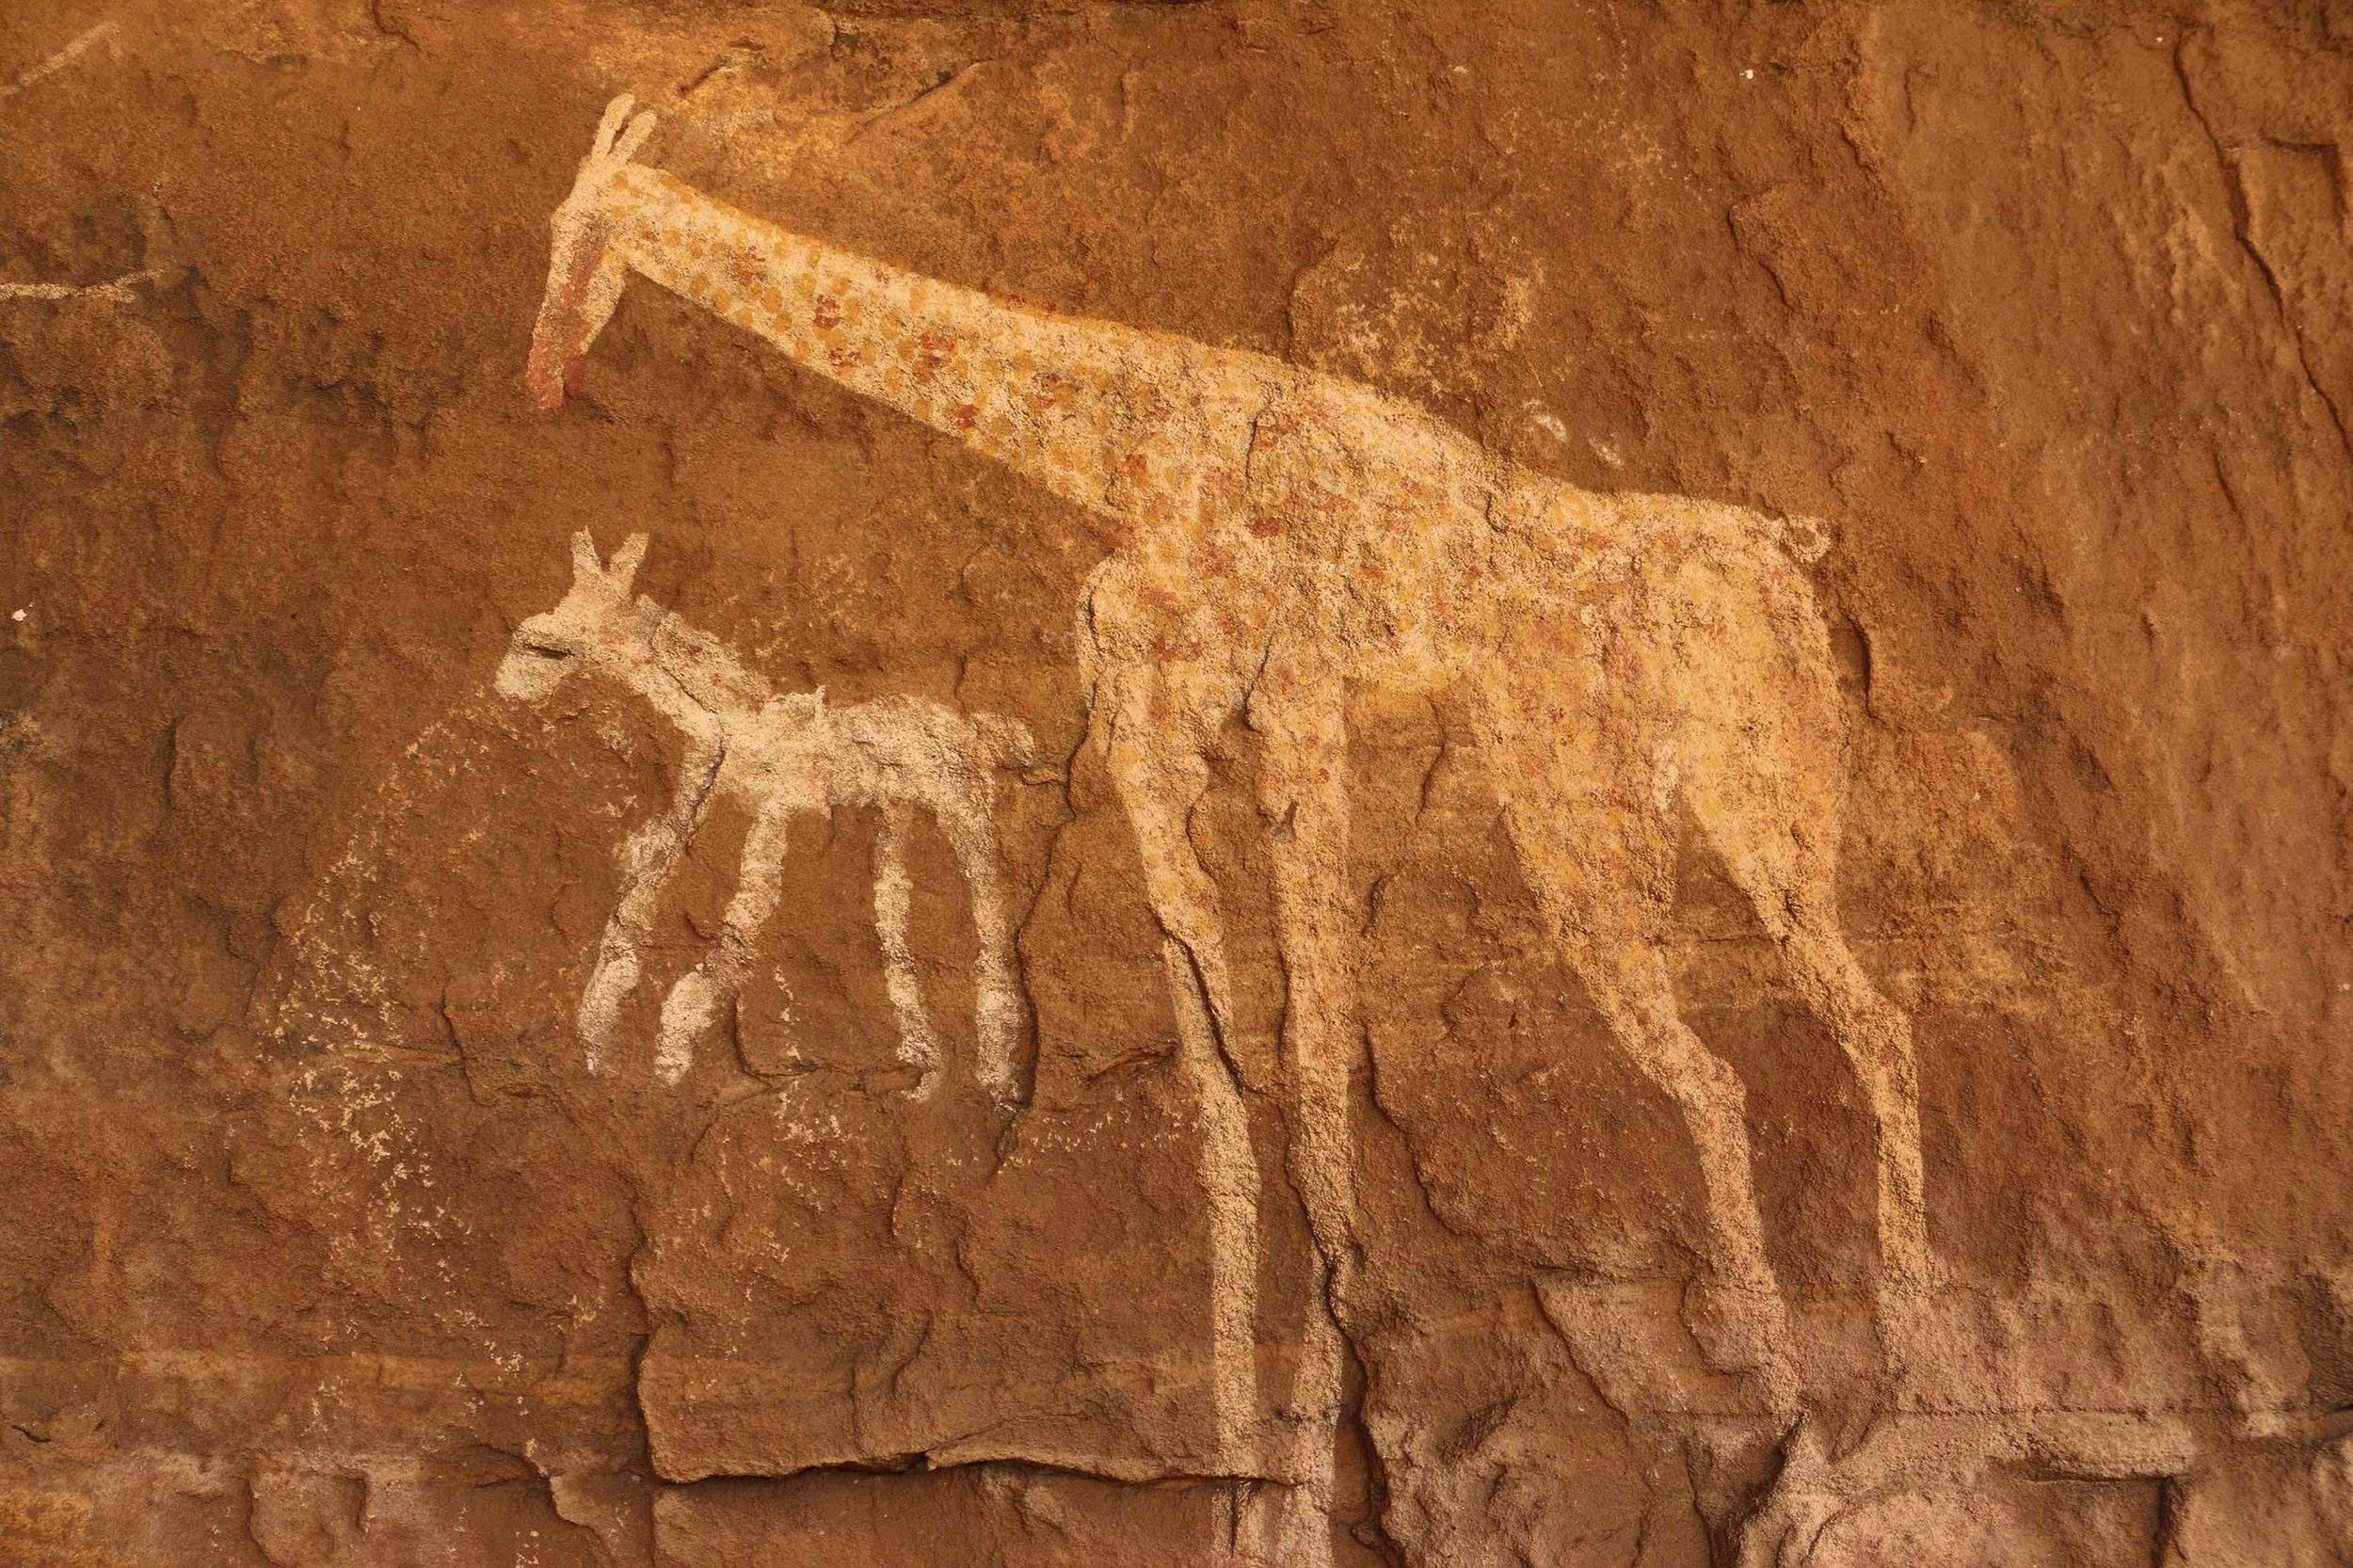 Image: Vandalised rock art is pictured at Tadrart Acacus